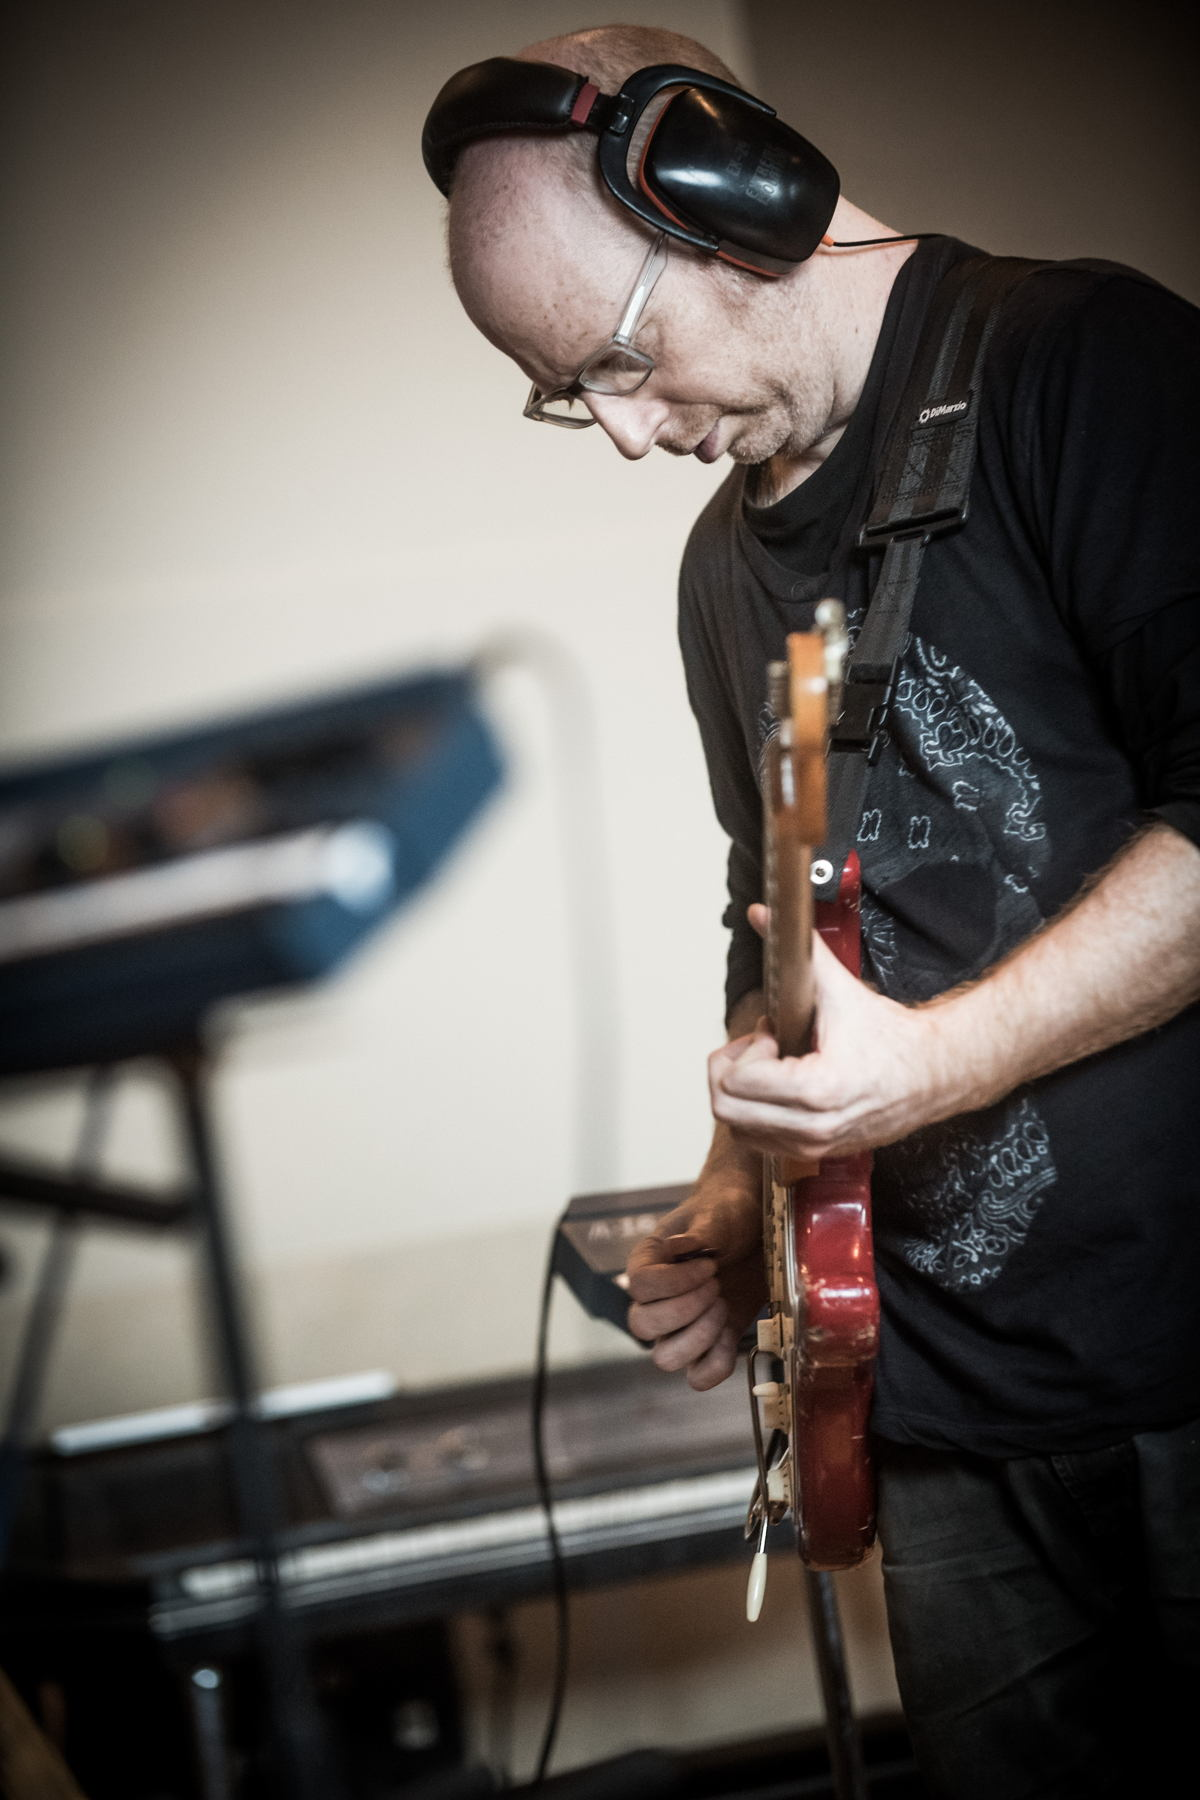 Oz Noy performing at Sweetwater Studios. Photo credit: Erick Anderson